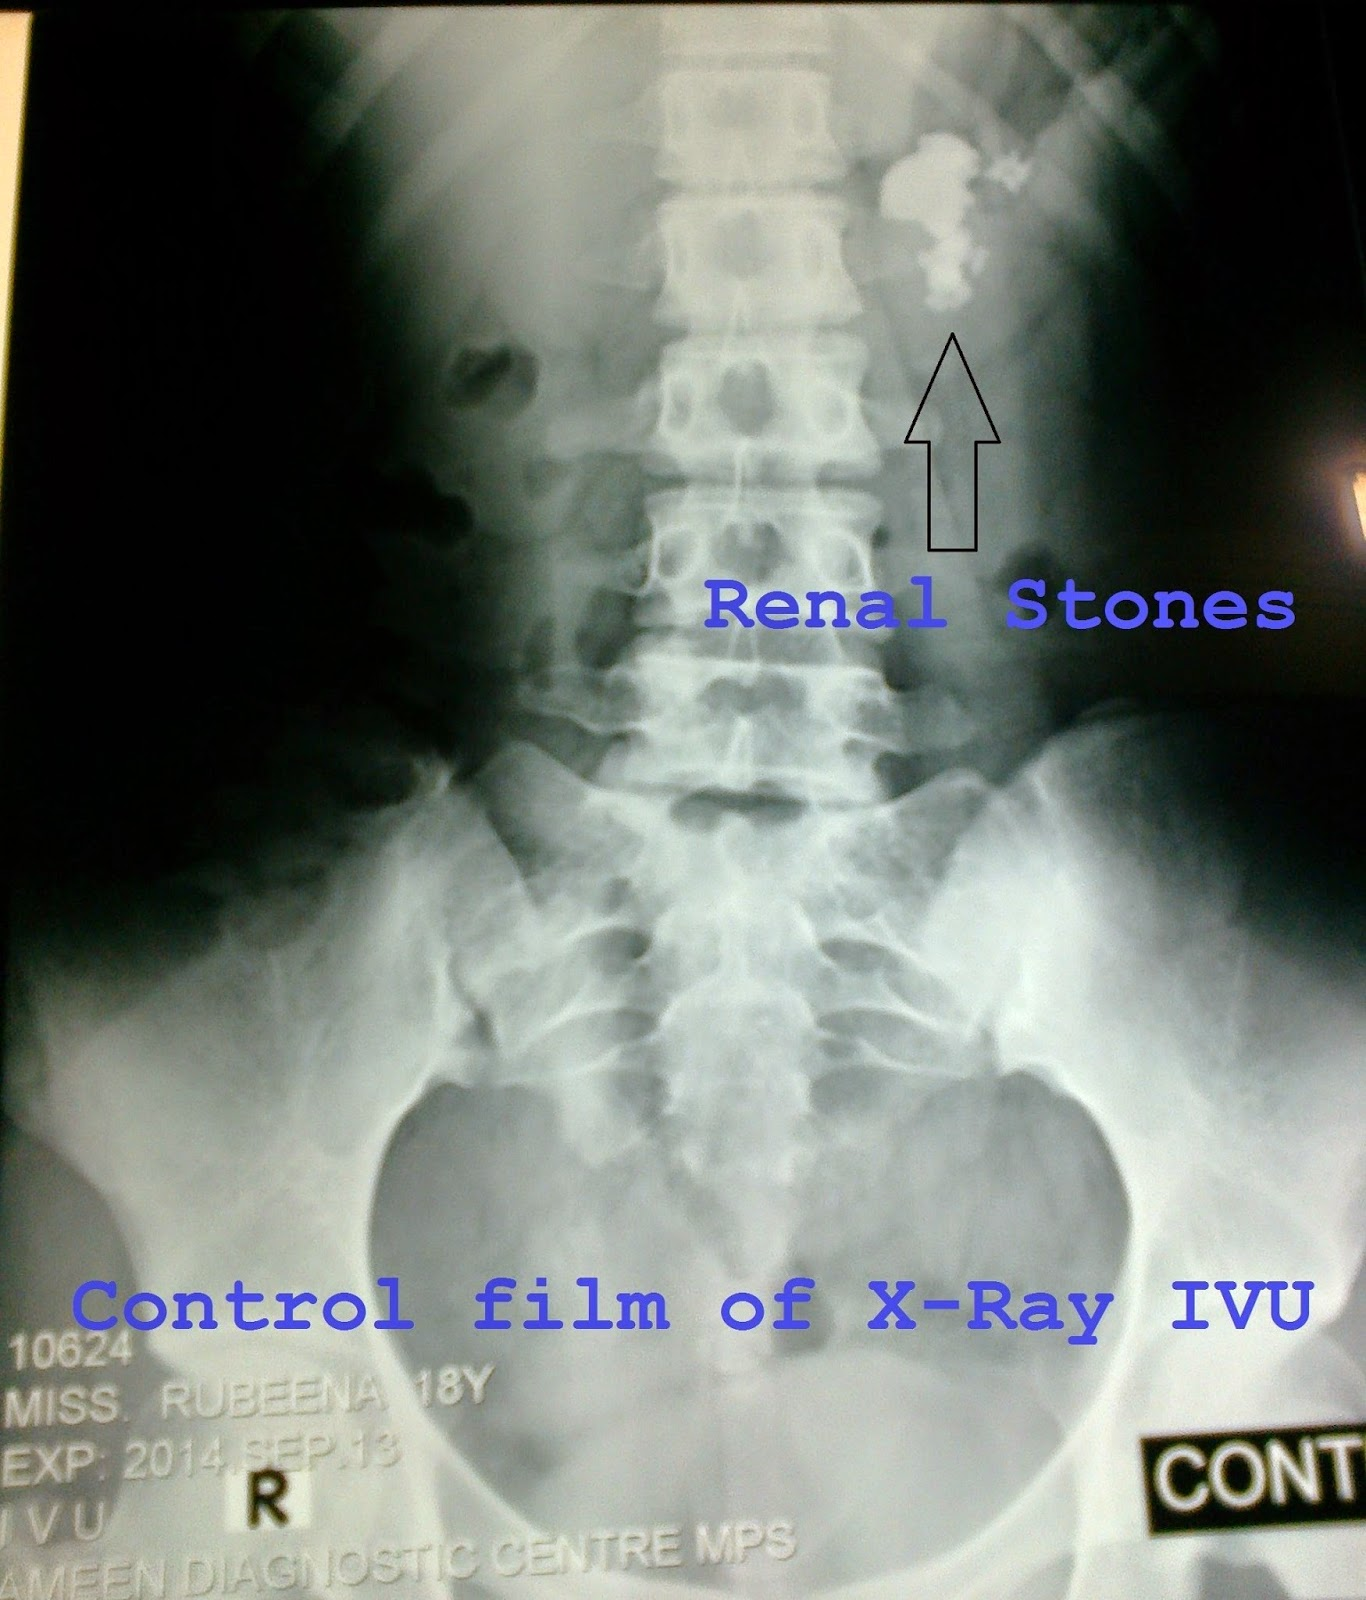 X-Ray KUB Showing Renal Stones